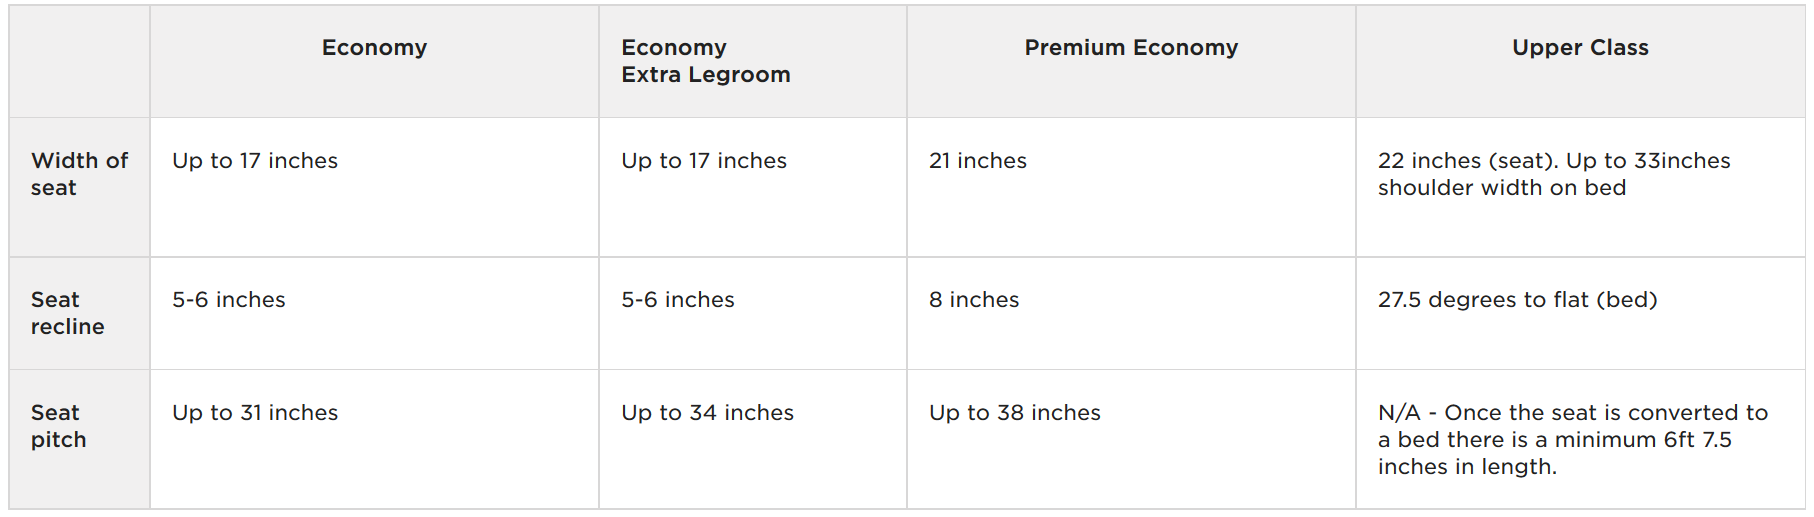 find out what the seat dimension you get when booking with a Virgin Atlantic Promo Code